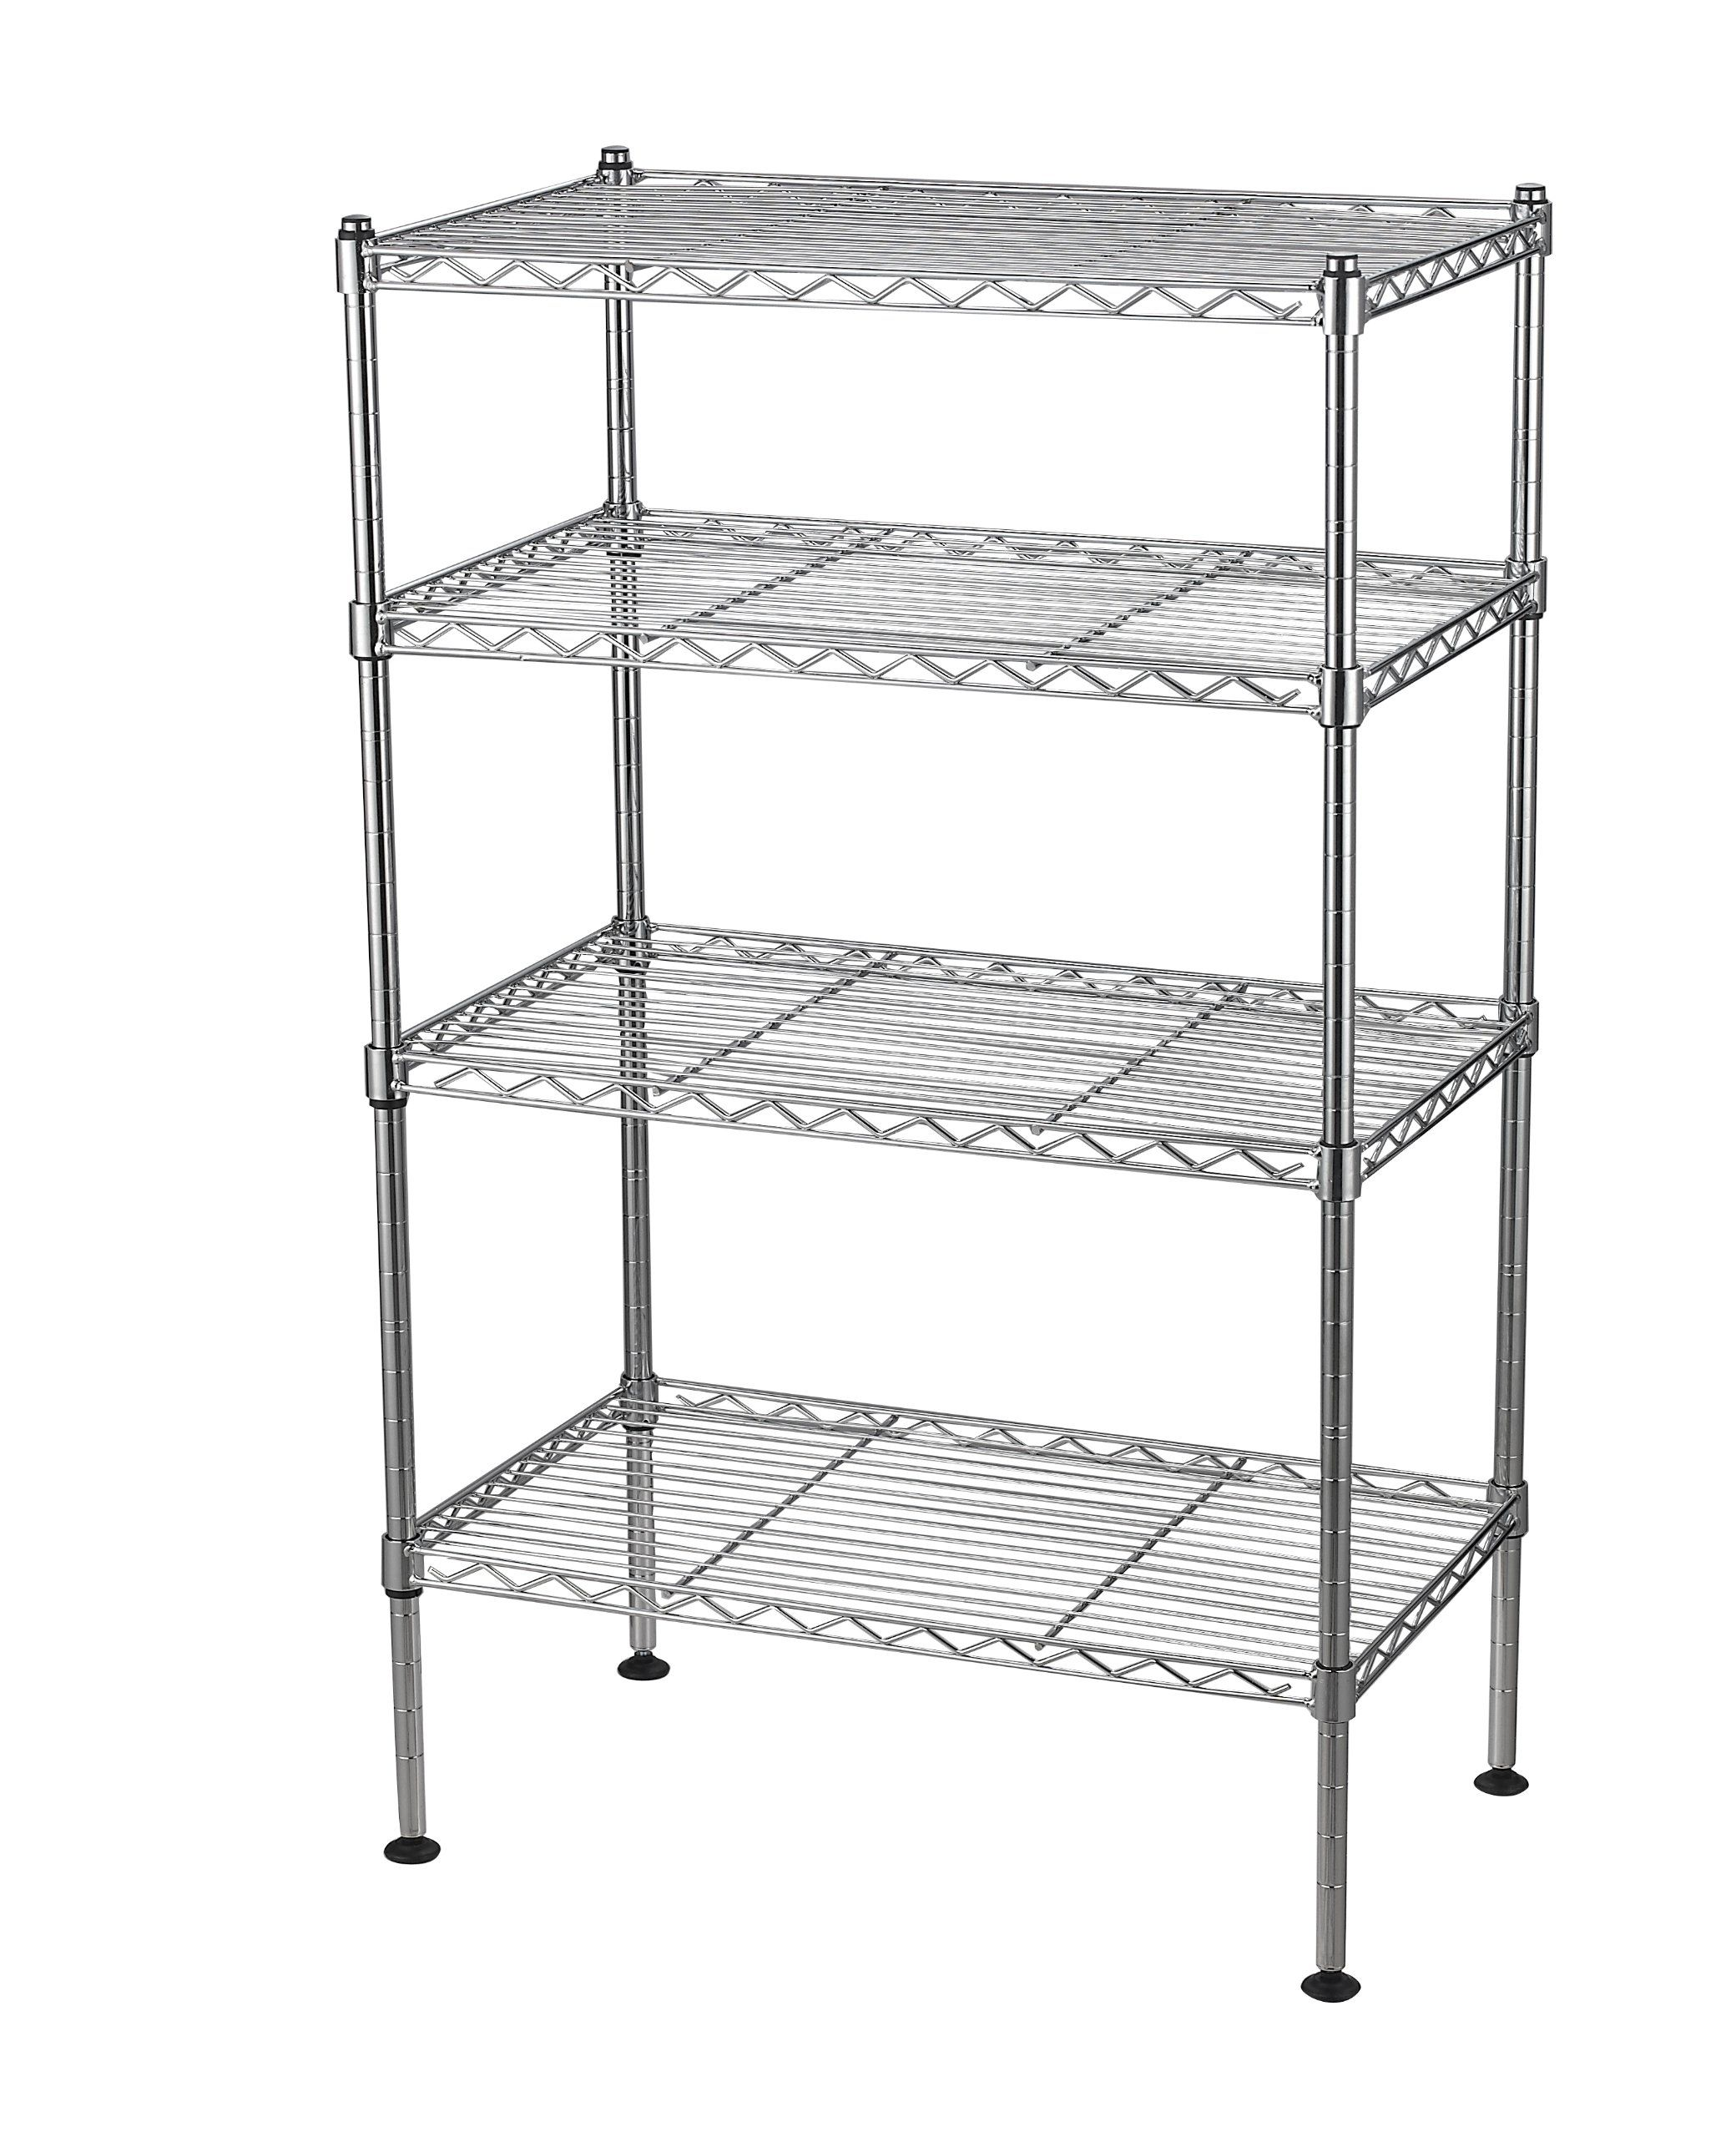 Sandusky Lee Ws201232 C Industrial Welded Wire Shelving 20 Quot Width X 32 Quot Height X 12 Quot Depth Chr Wire Shelving Units Wire Shelving Shelving Unit